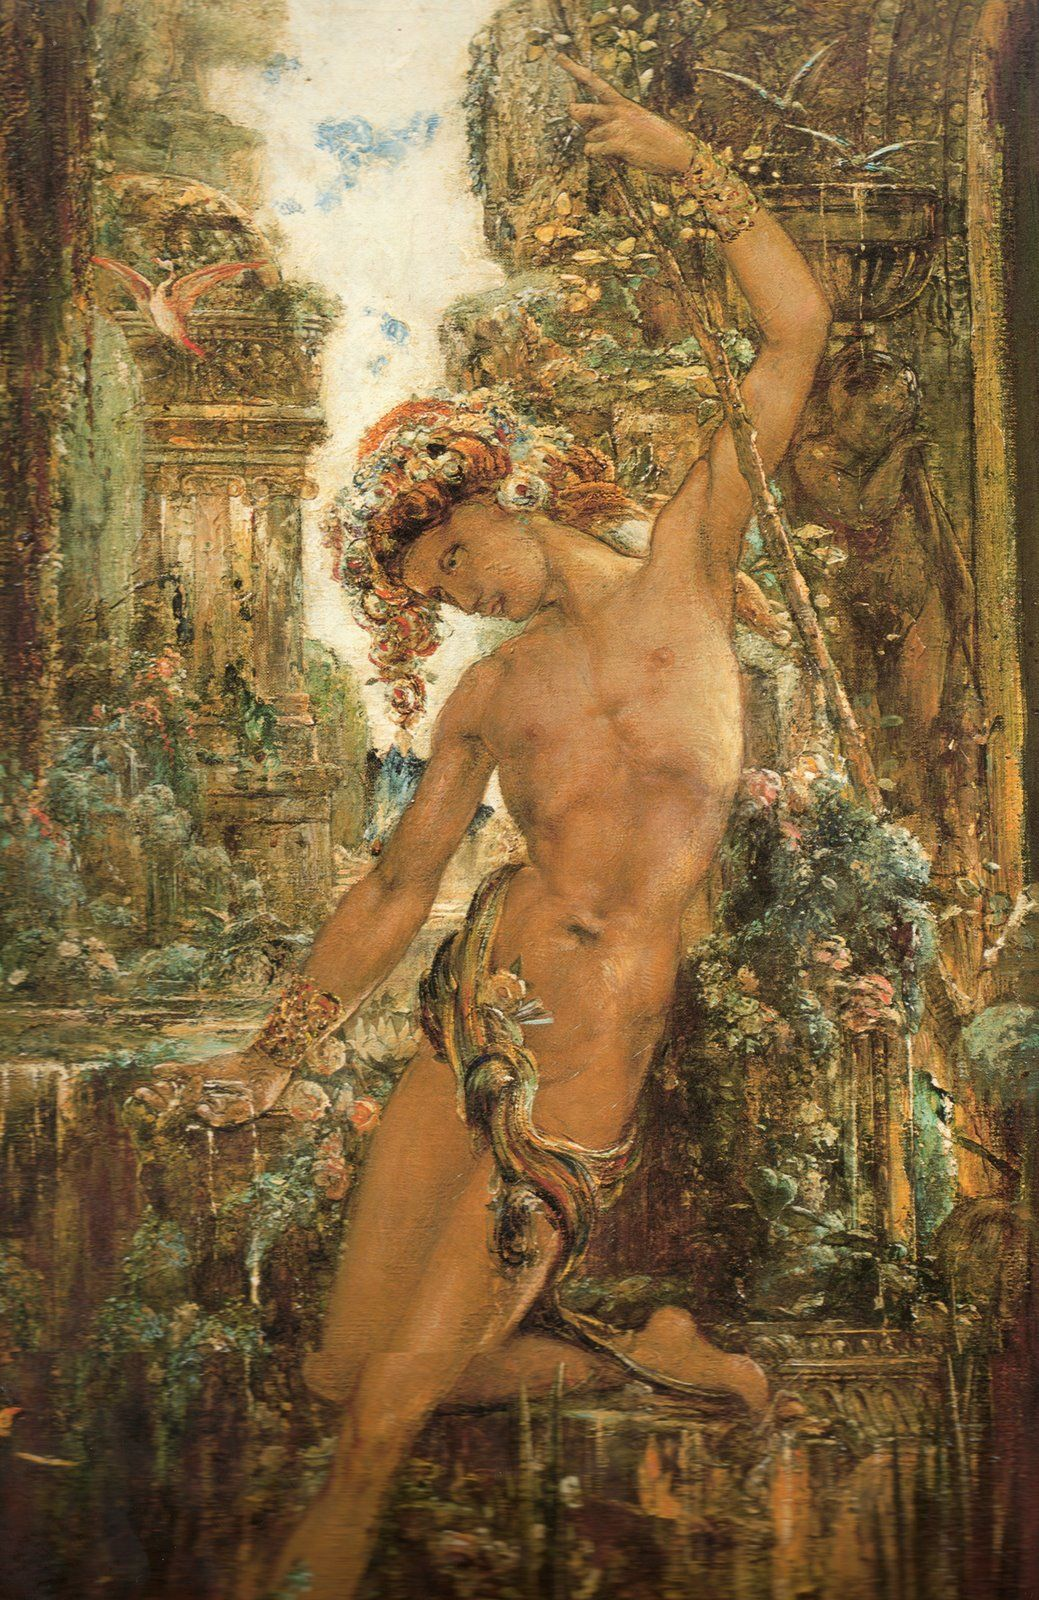 narcissus by gustave moreau circa art experience nyc  narcissus by gustave moreau circa 1890 art experience nyc artexperiencenyc com